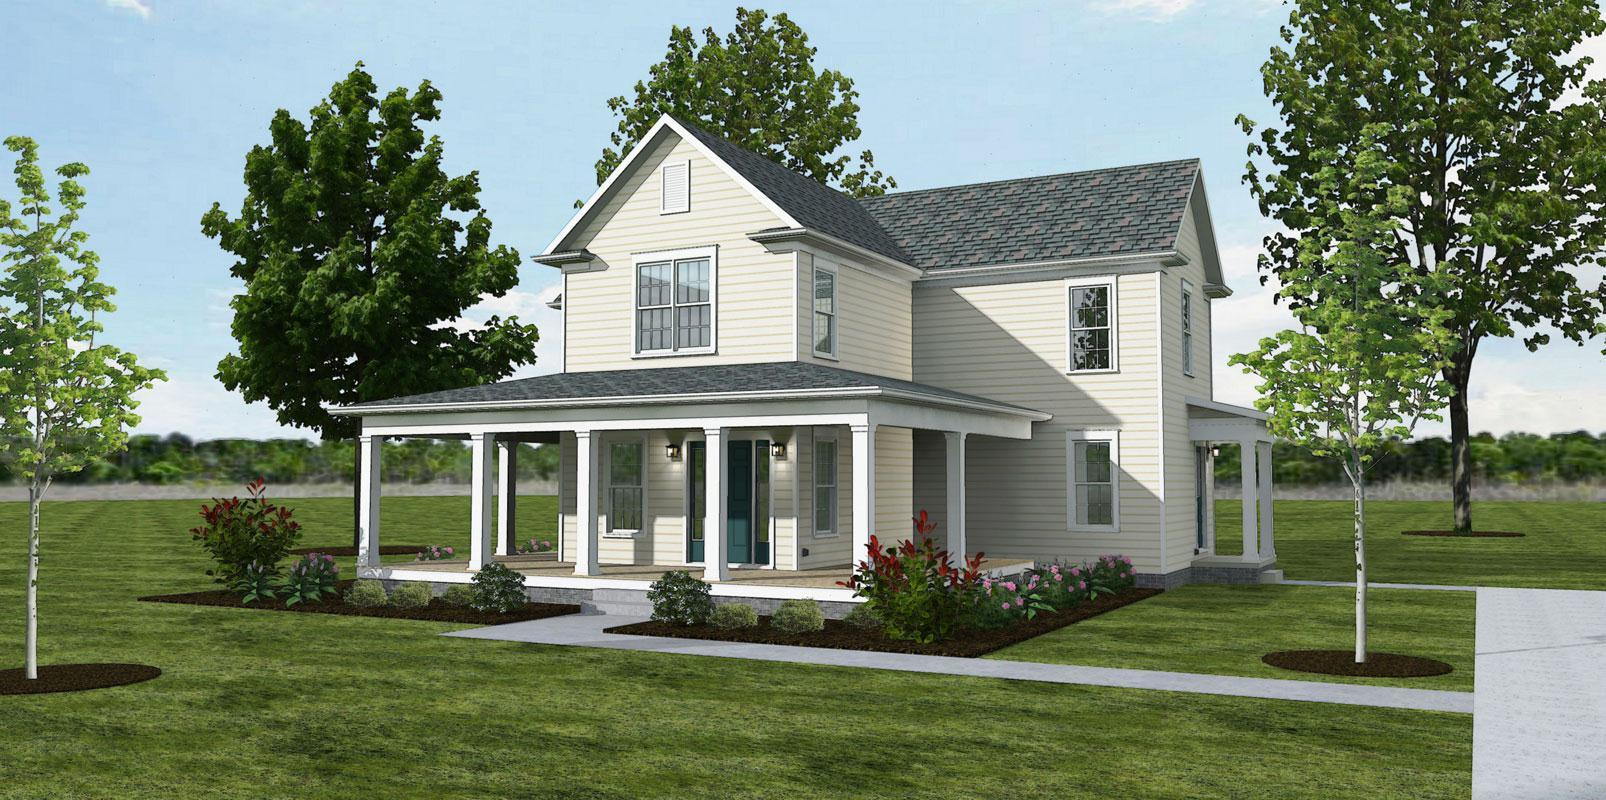 The Apple Valley - Farmhouse:Elevation